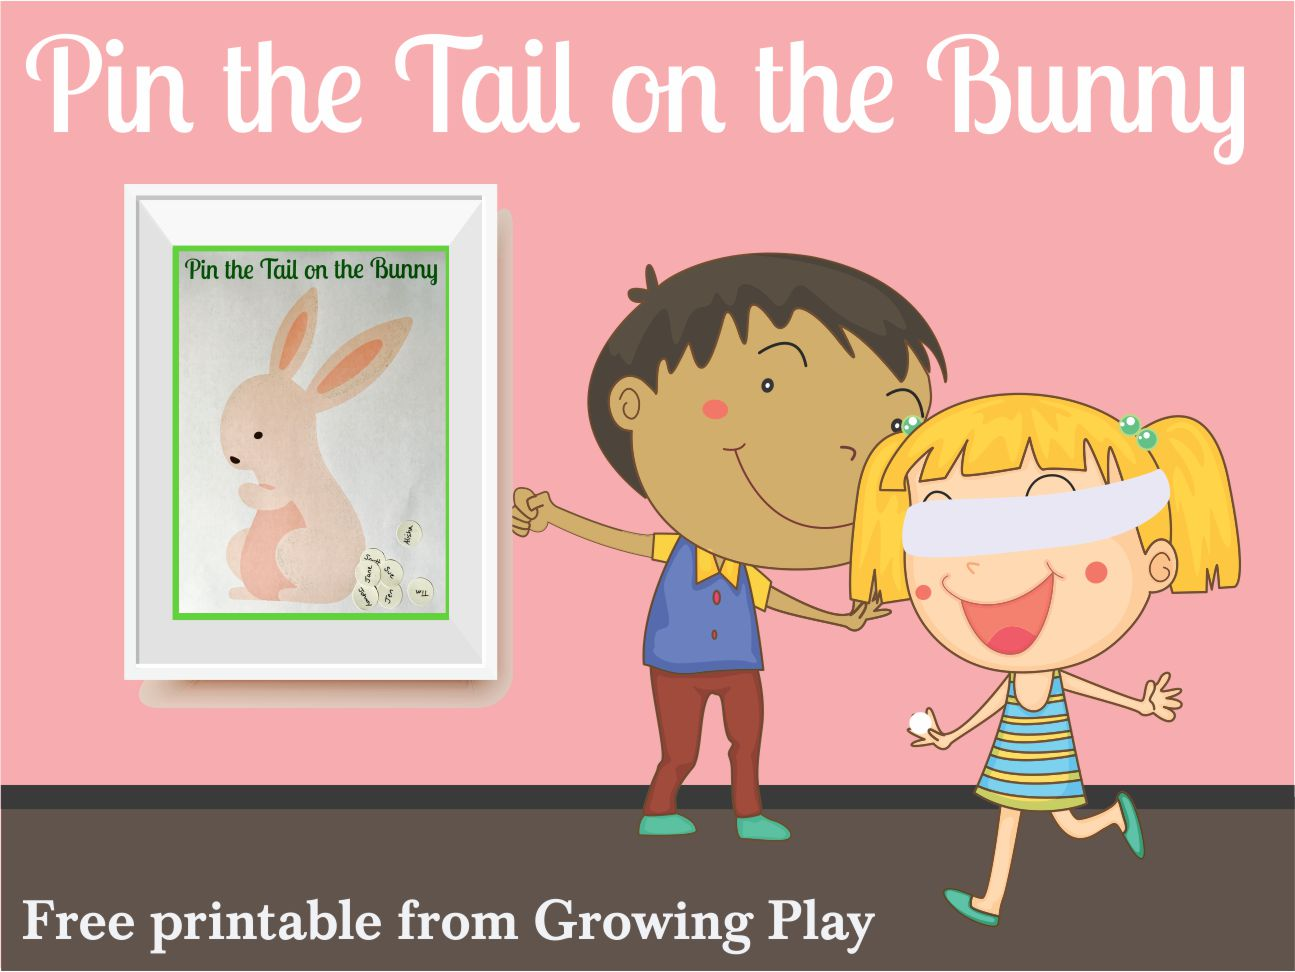 photograph relating to Pin the Tail on the Bunny Printable named Pin the Tail upon the Bunny Recreation - Totally free Printable - Increasing Enjoy